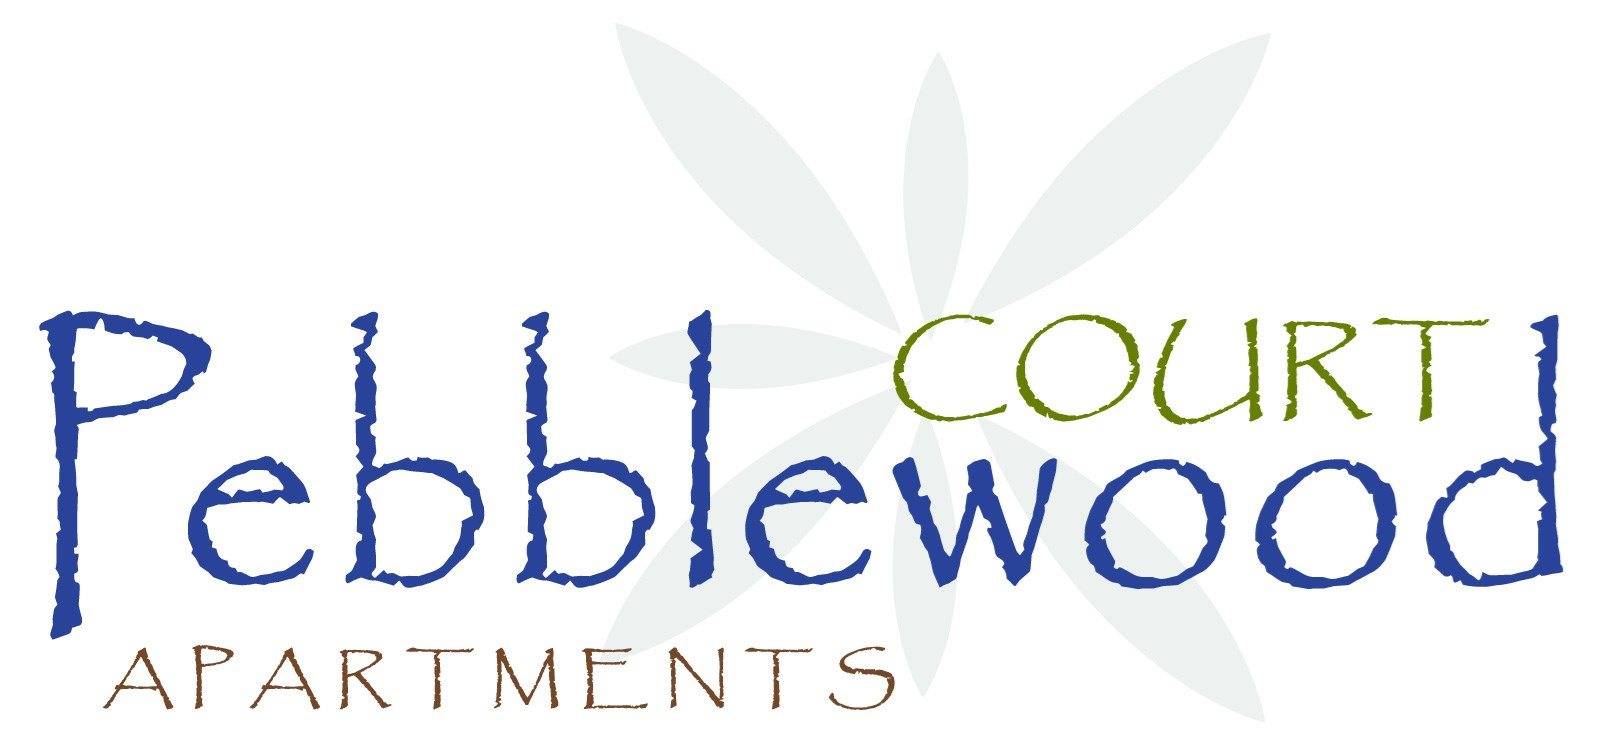 Pebblewood Court Property Logo 0